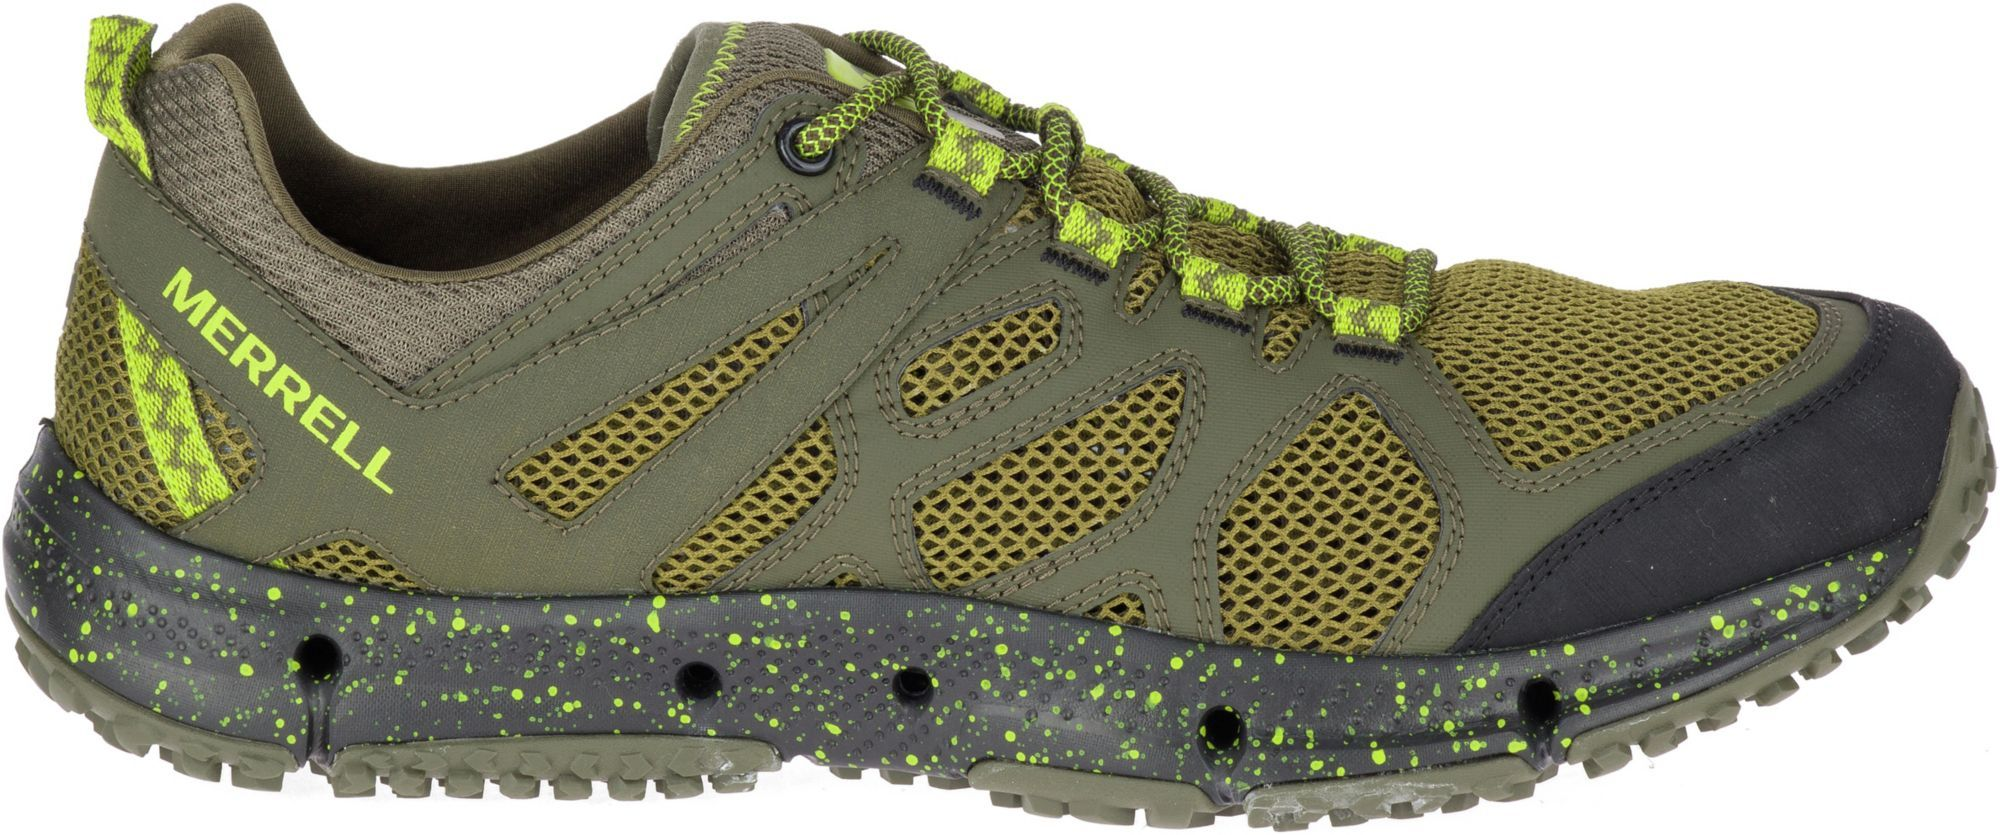 f382625a0c7 Merrell Men's Hydrotrekker Hiking Shoes in 2019 | Products | Hiking ...